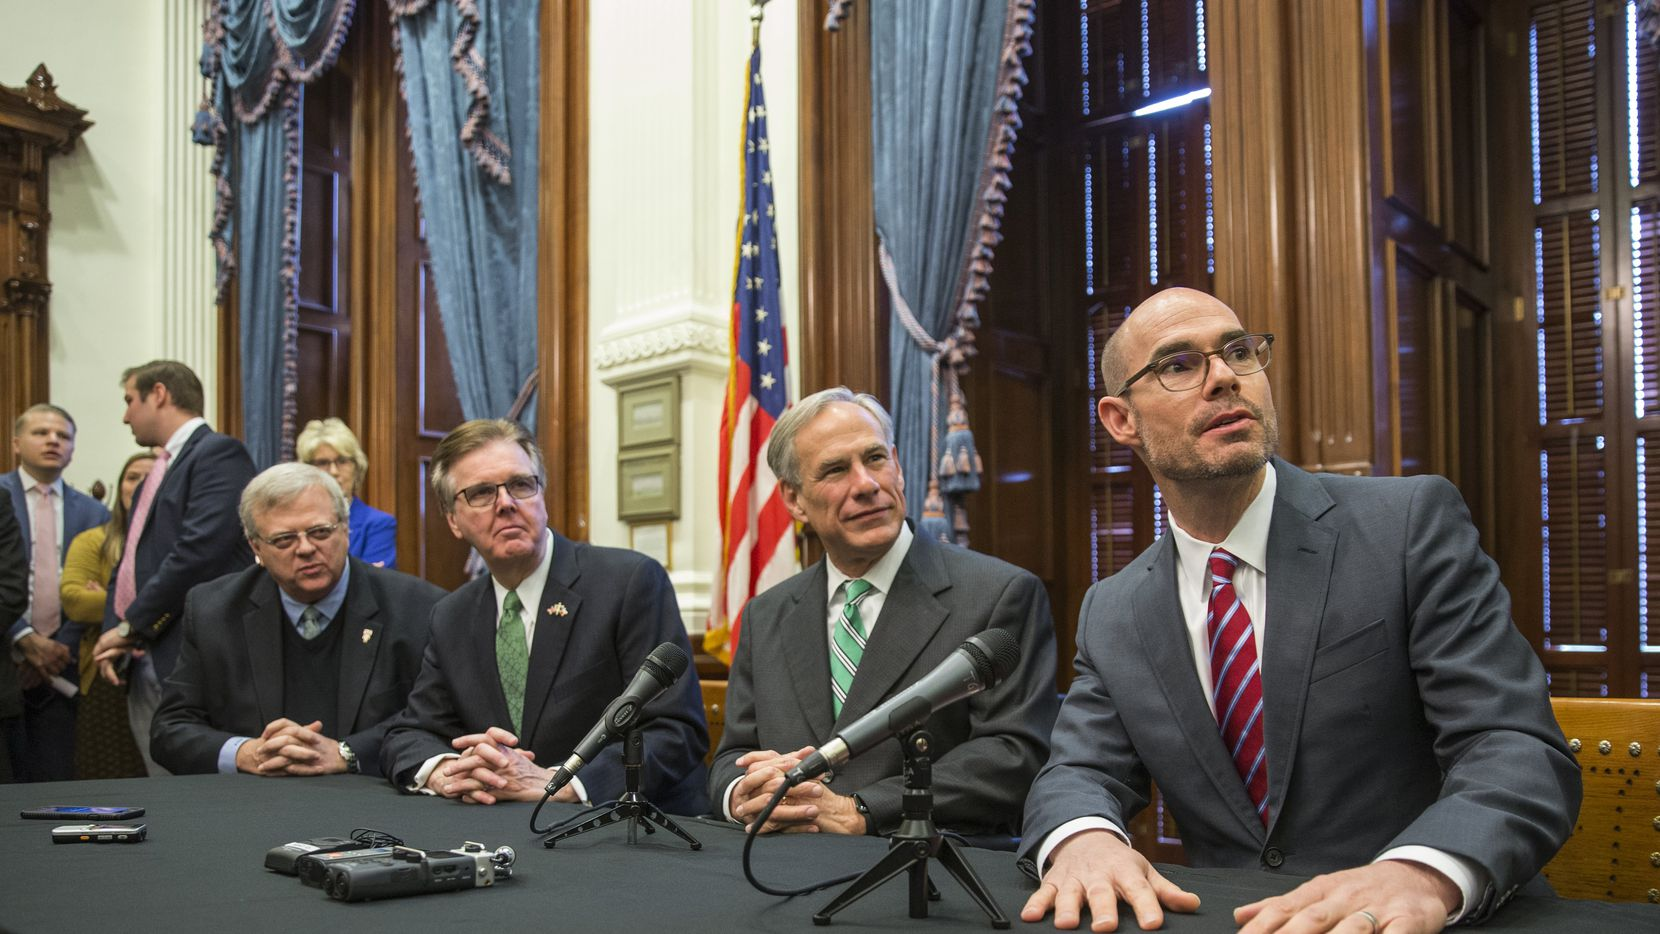 Paul Bettencourt, Lt. Gov. Dan Patrick, Gov. Greg Abbott, and Speaker Dennis Bonnen as well as chairmen for committees charged with studying property tax reforms spoke to the local news media  during  a press conference Thursday morning about tax reform in Texas.